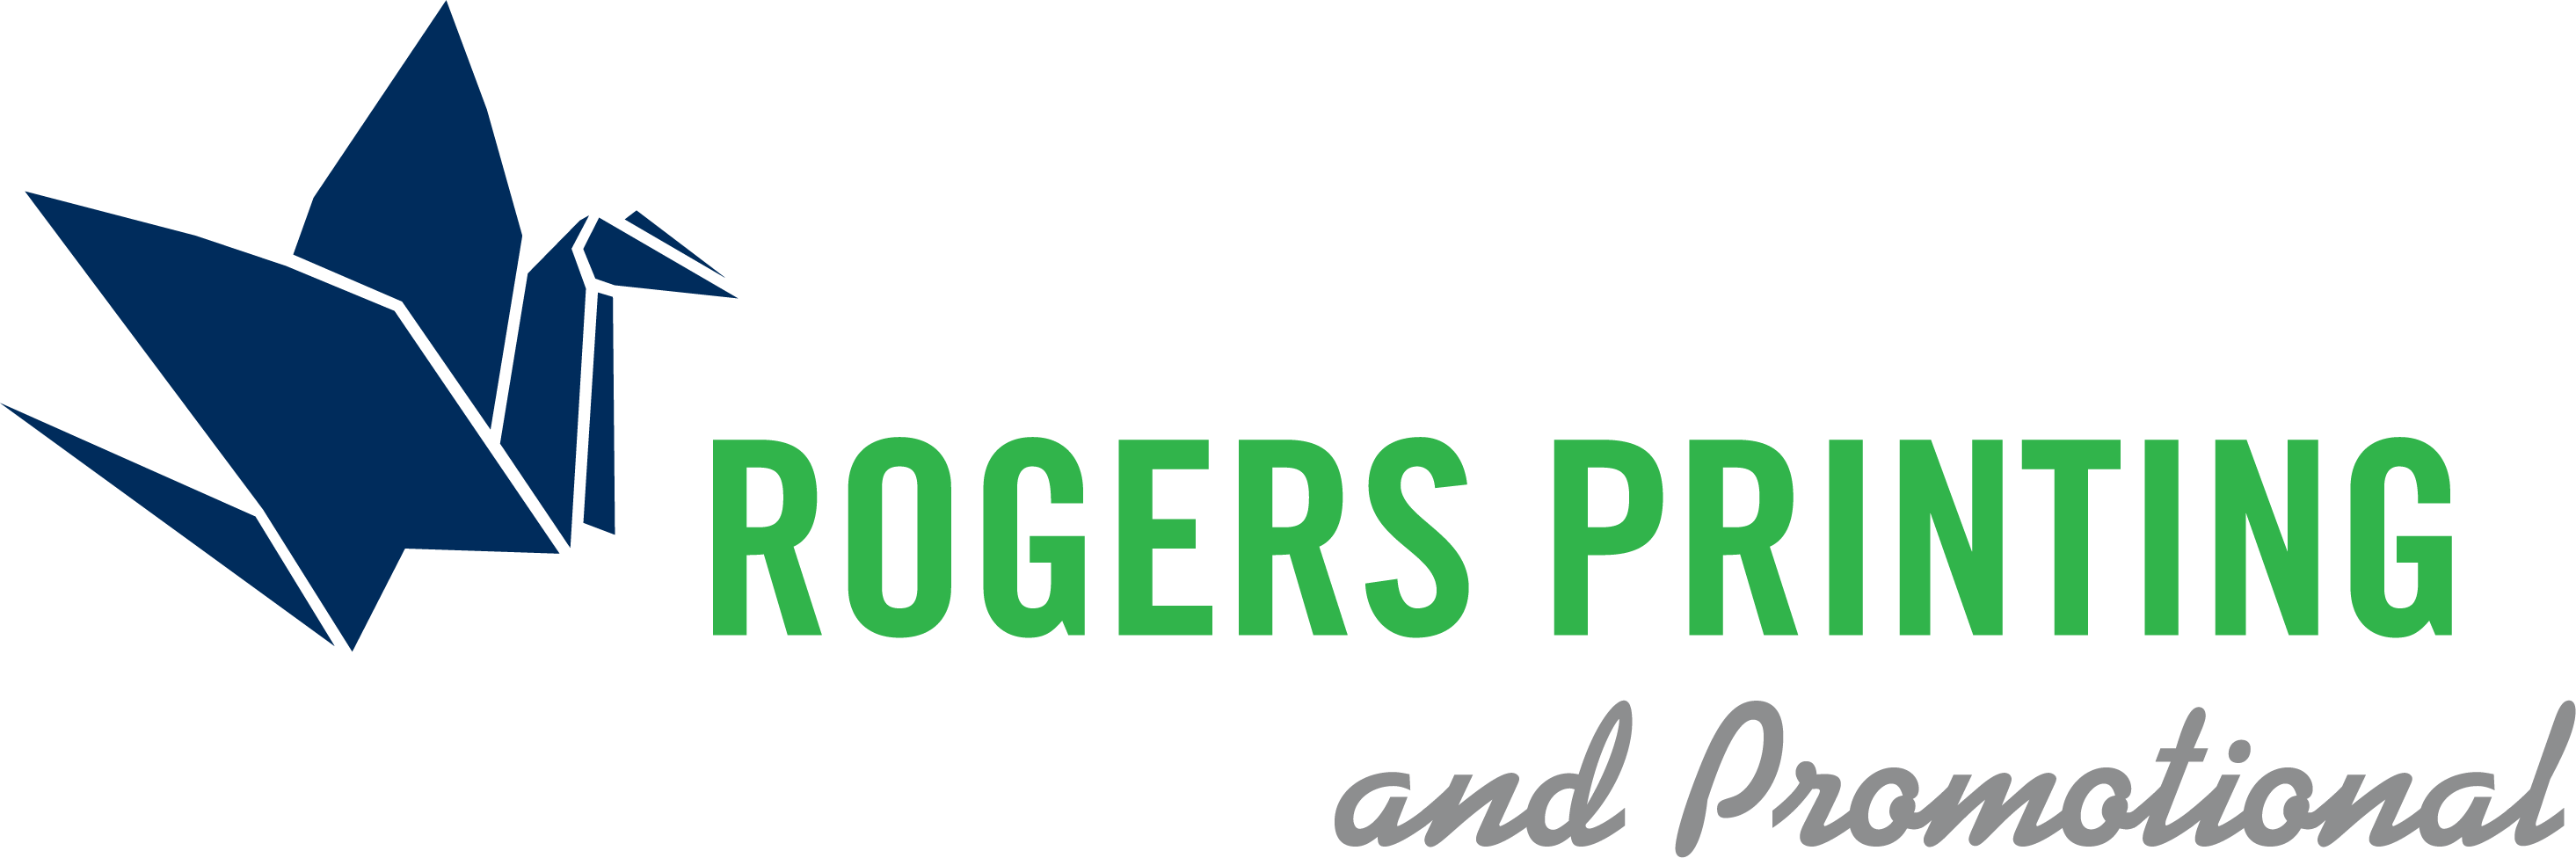 Rogers Printing logo